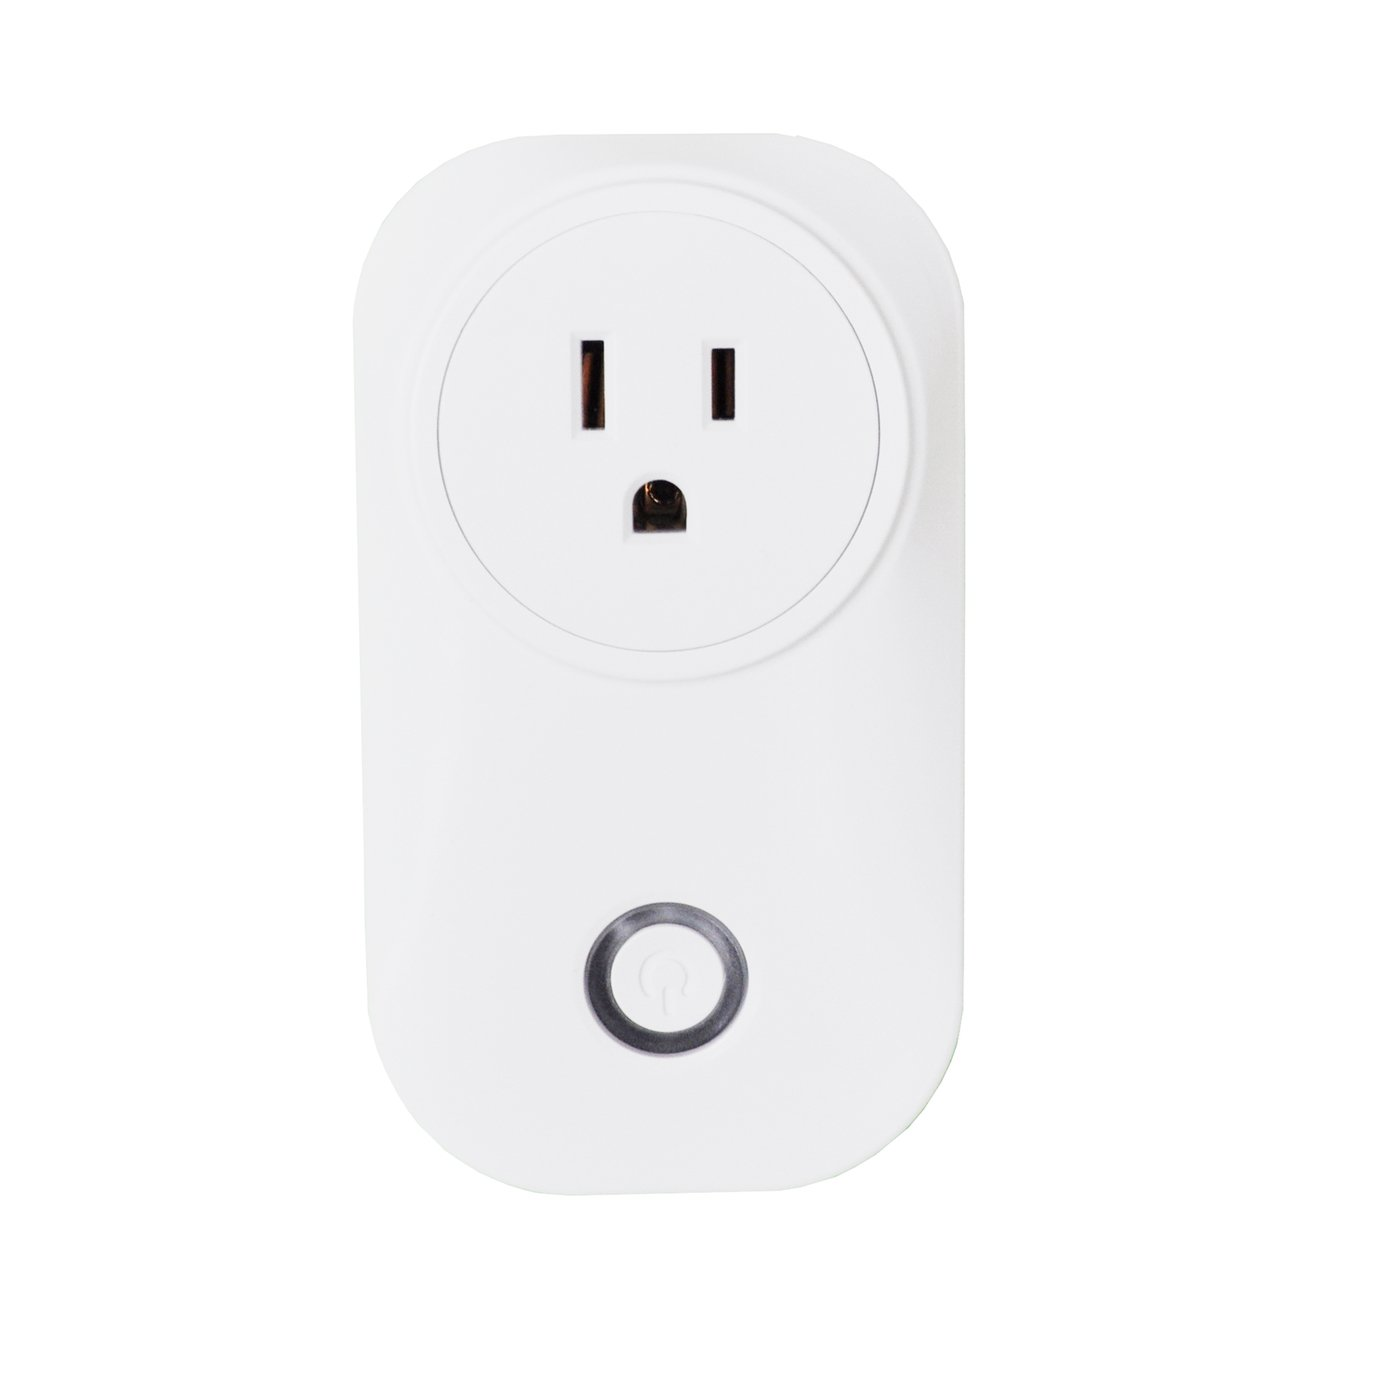 Smart ZigBee Plug Socket for Smart Home Automation with SmartThings and Amazon Echo Plus Hue Hub Needed for Amazon Alexa and Google Assistant Voice Control